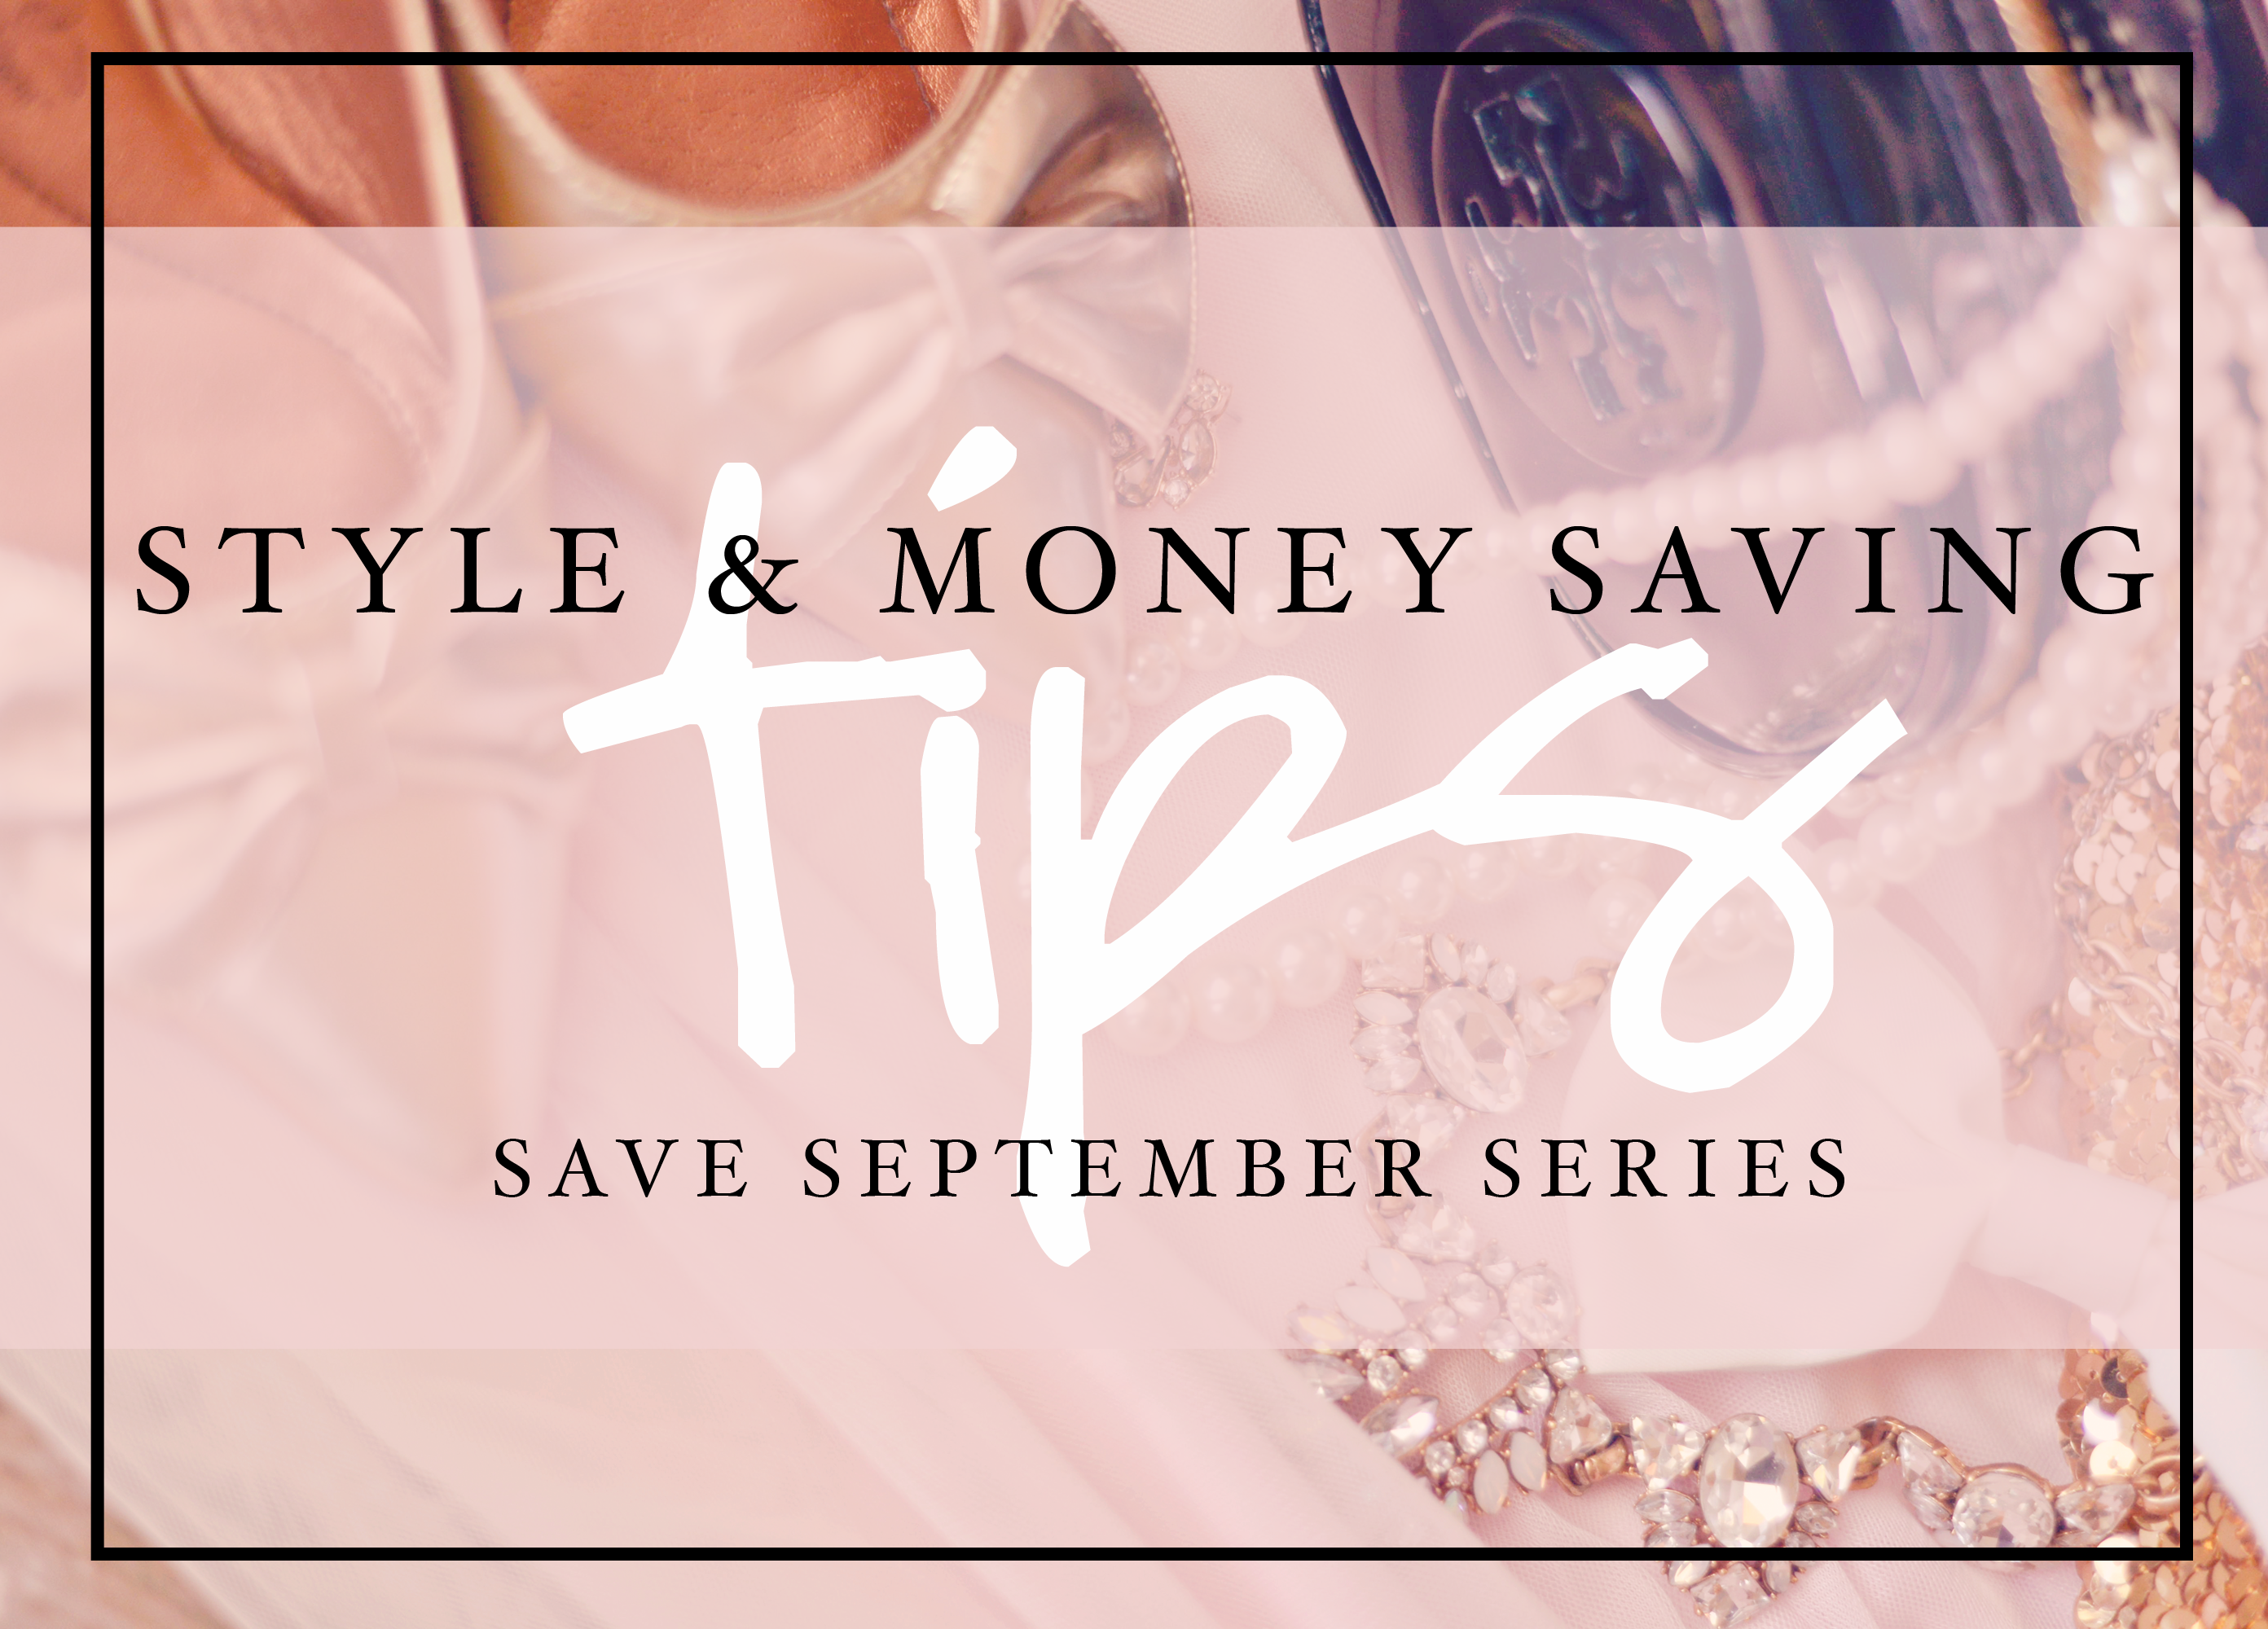 Save September Series